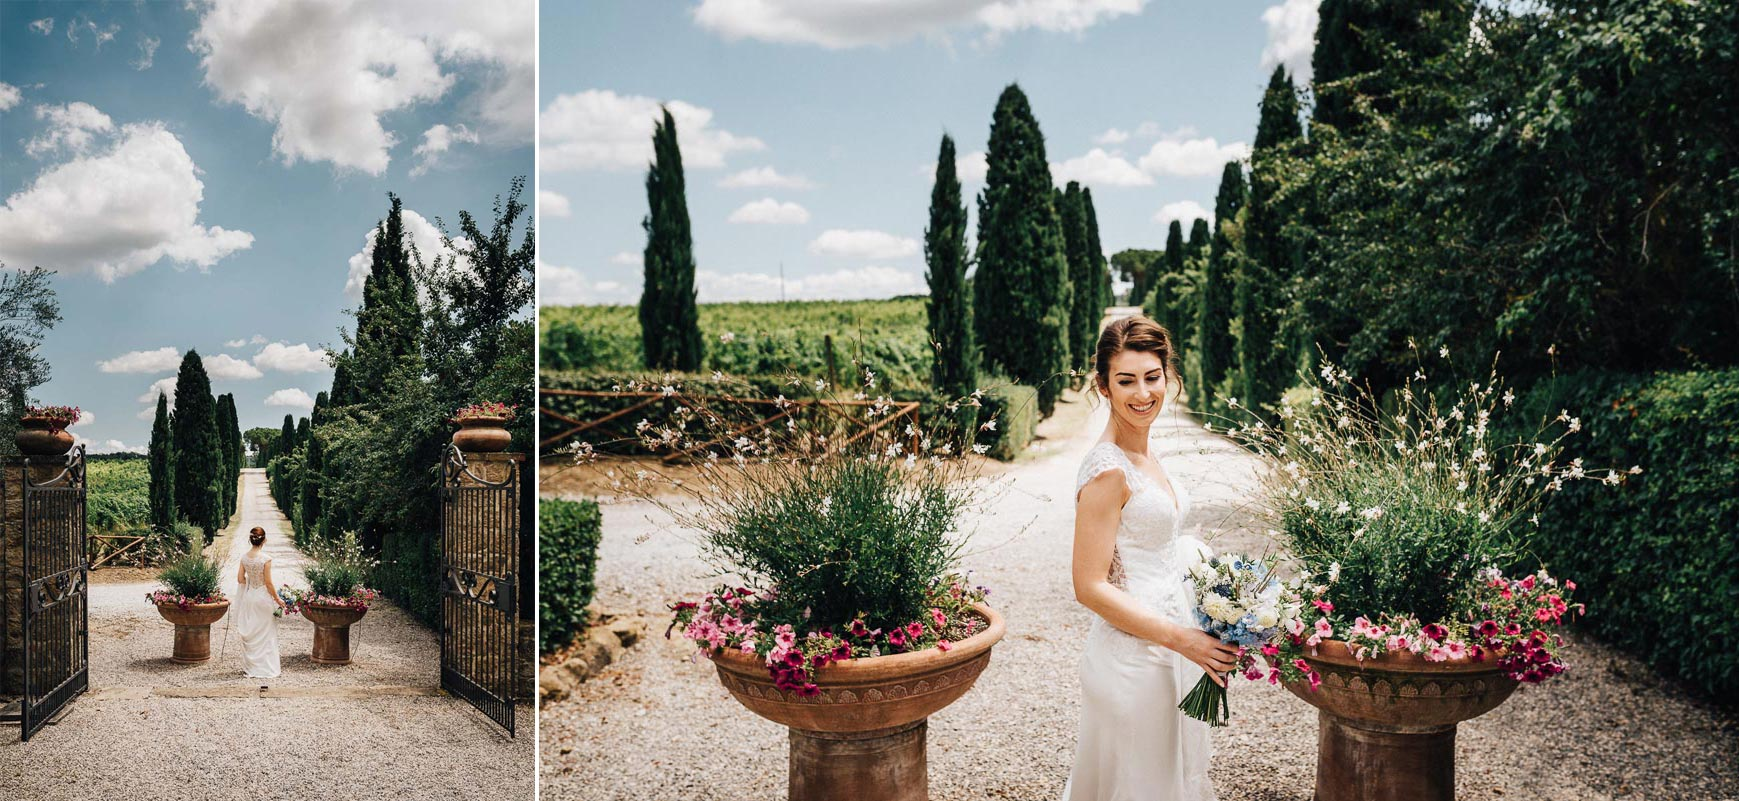 pienza-tuscany-wedding-photographer-63.jpg